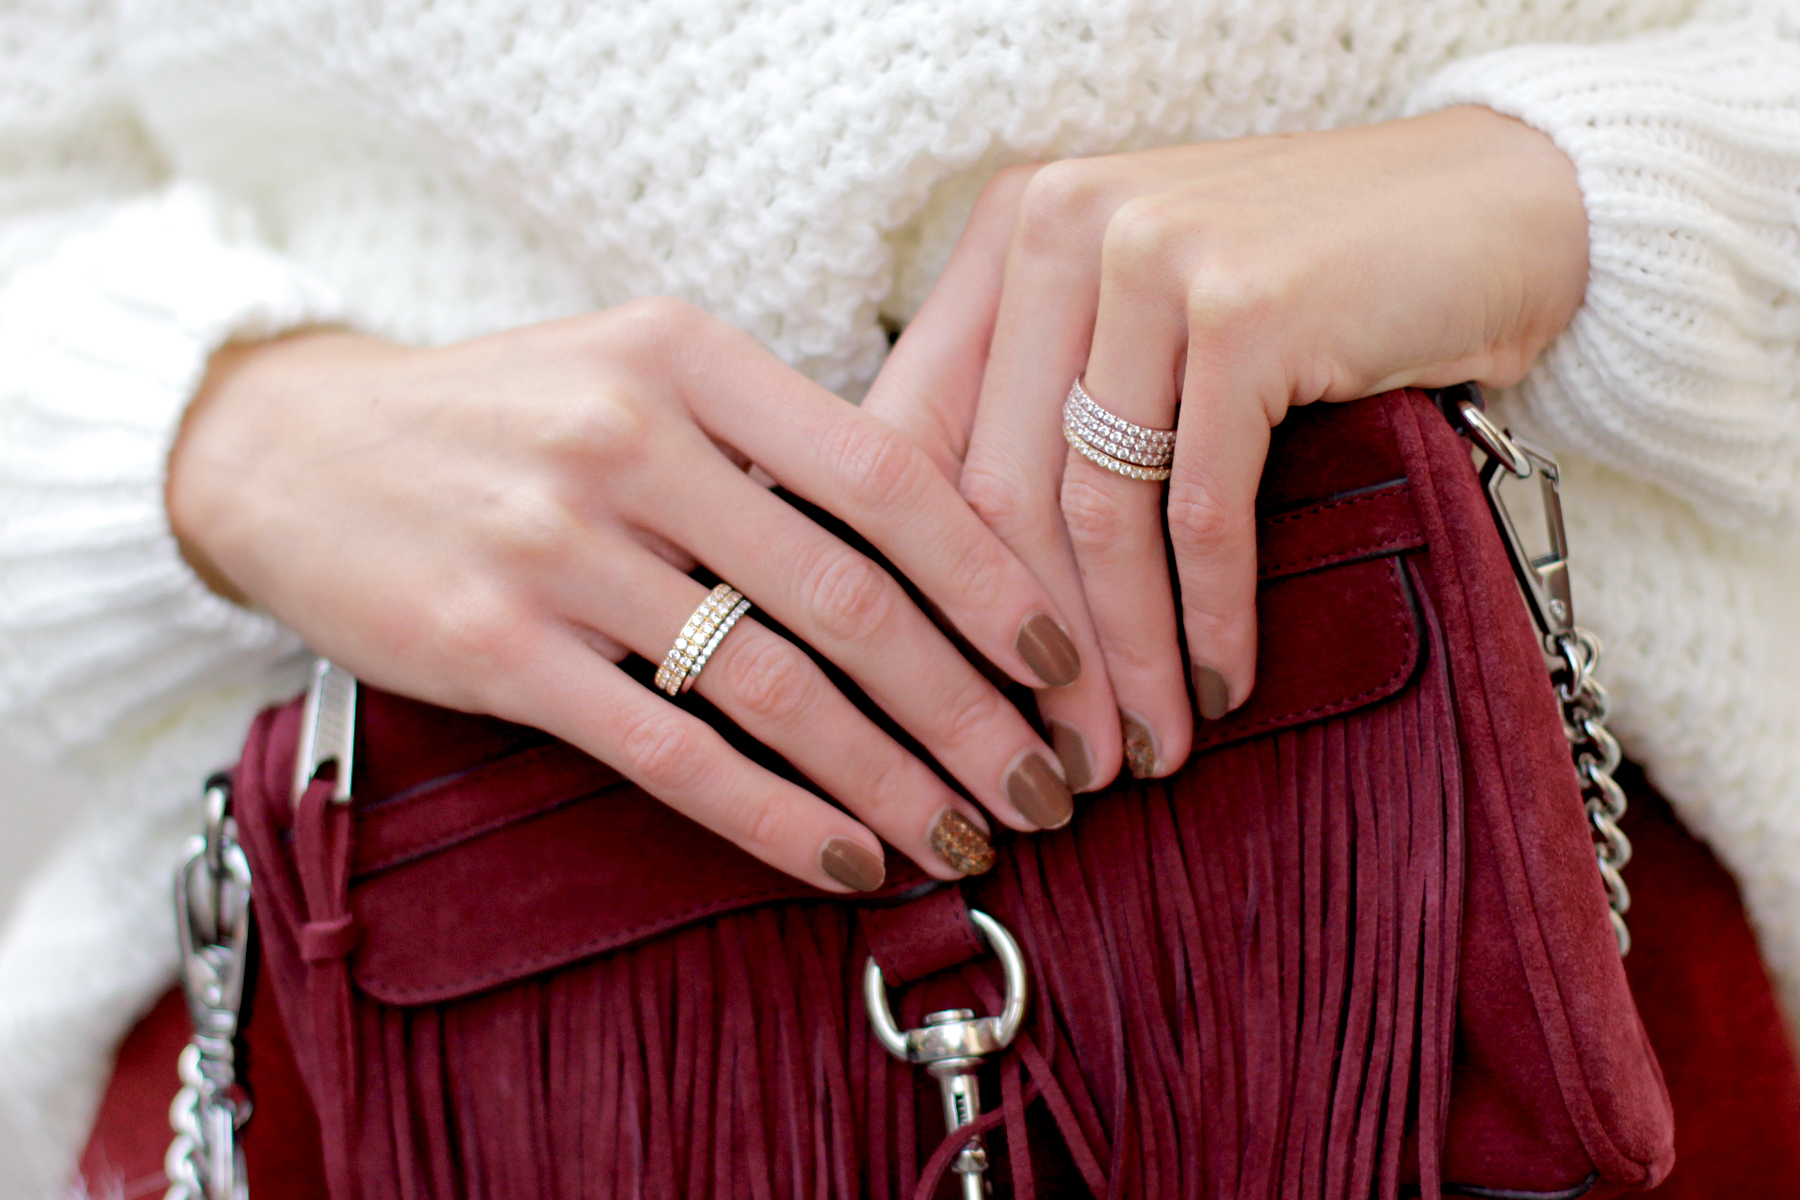 edited the label red burgundy a line skirt seventies soft white knit rebecca minkoff wine bag cross body cats & dogs fashionblogger ricarda schernus blog berlin hannover düsseldorf 3